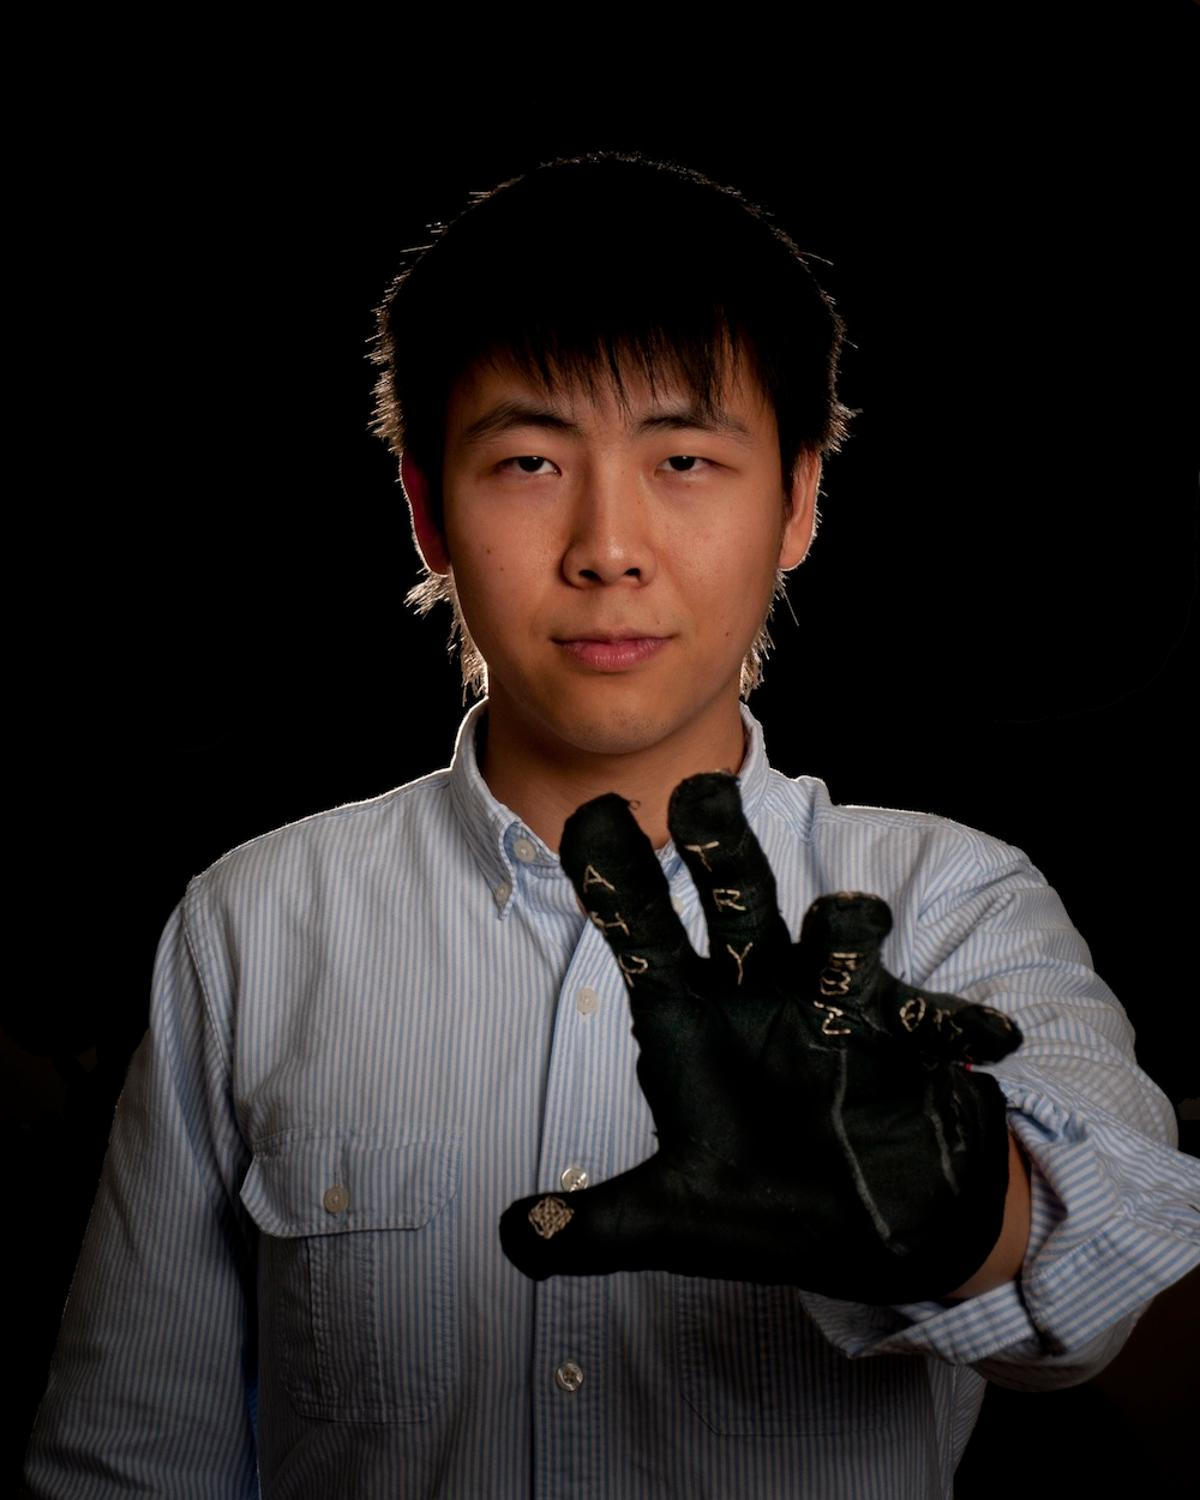 In addition to offering the convenience of typing one-handed, Gauntlet could enable people with disabilities to type more effectively